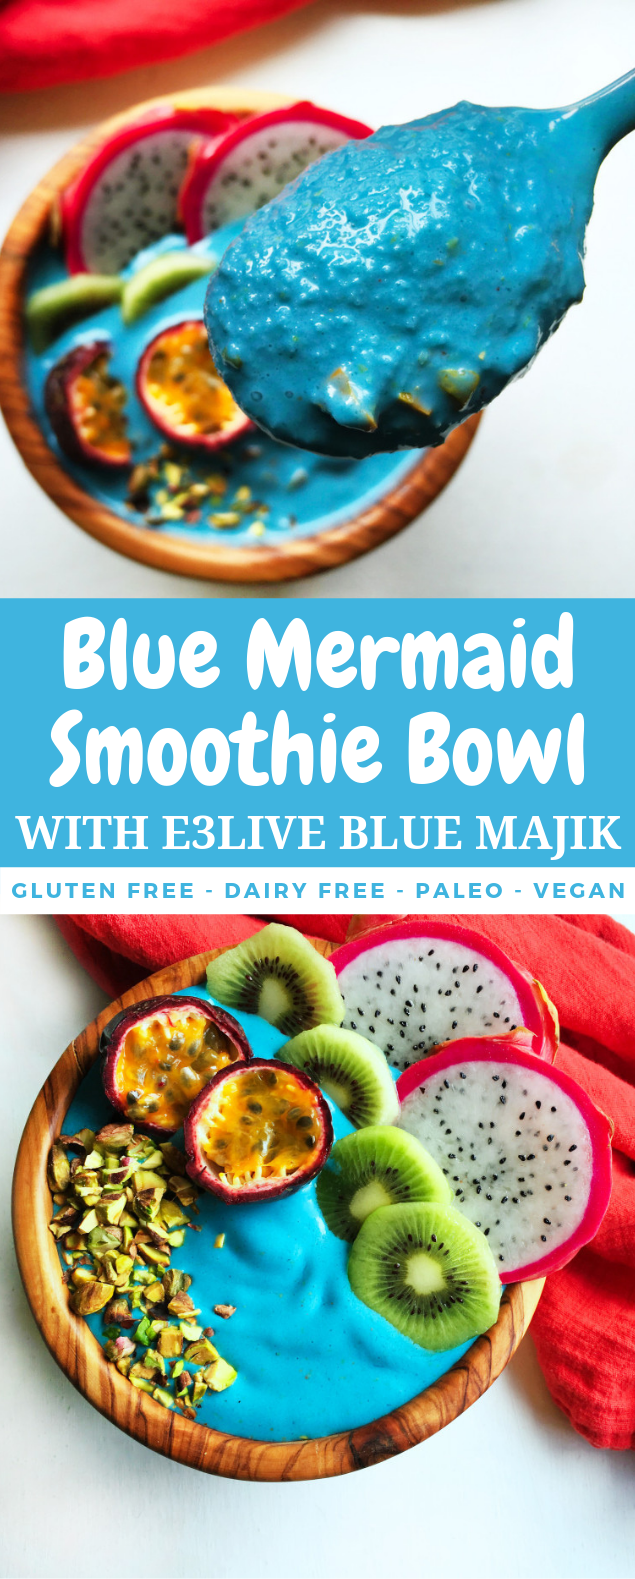 Blue Mermaid Smoothie Bowl with E3Live Blue Majik #healthydiet #detox